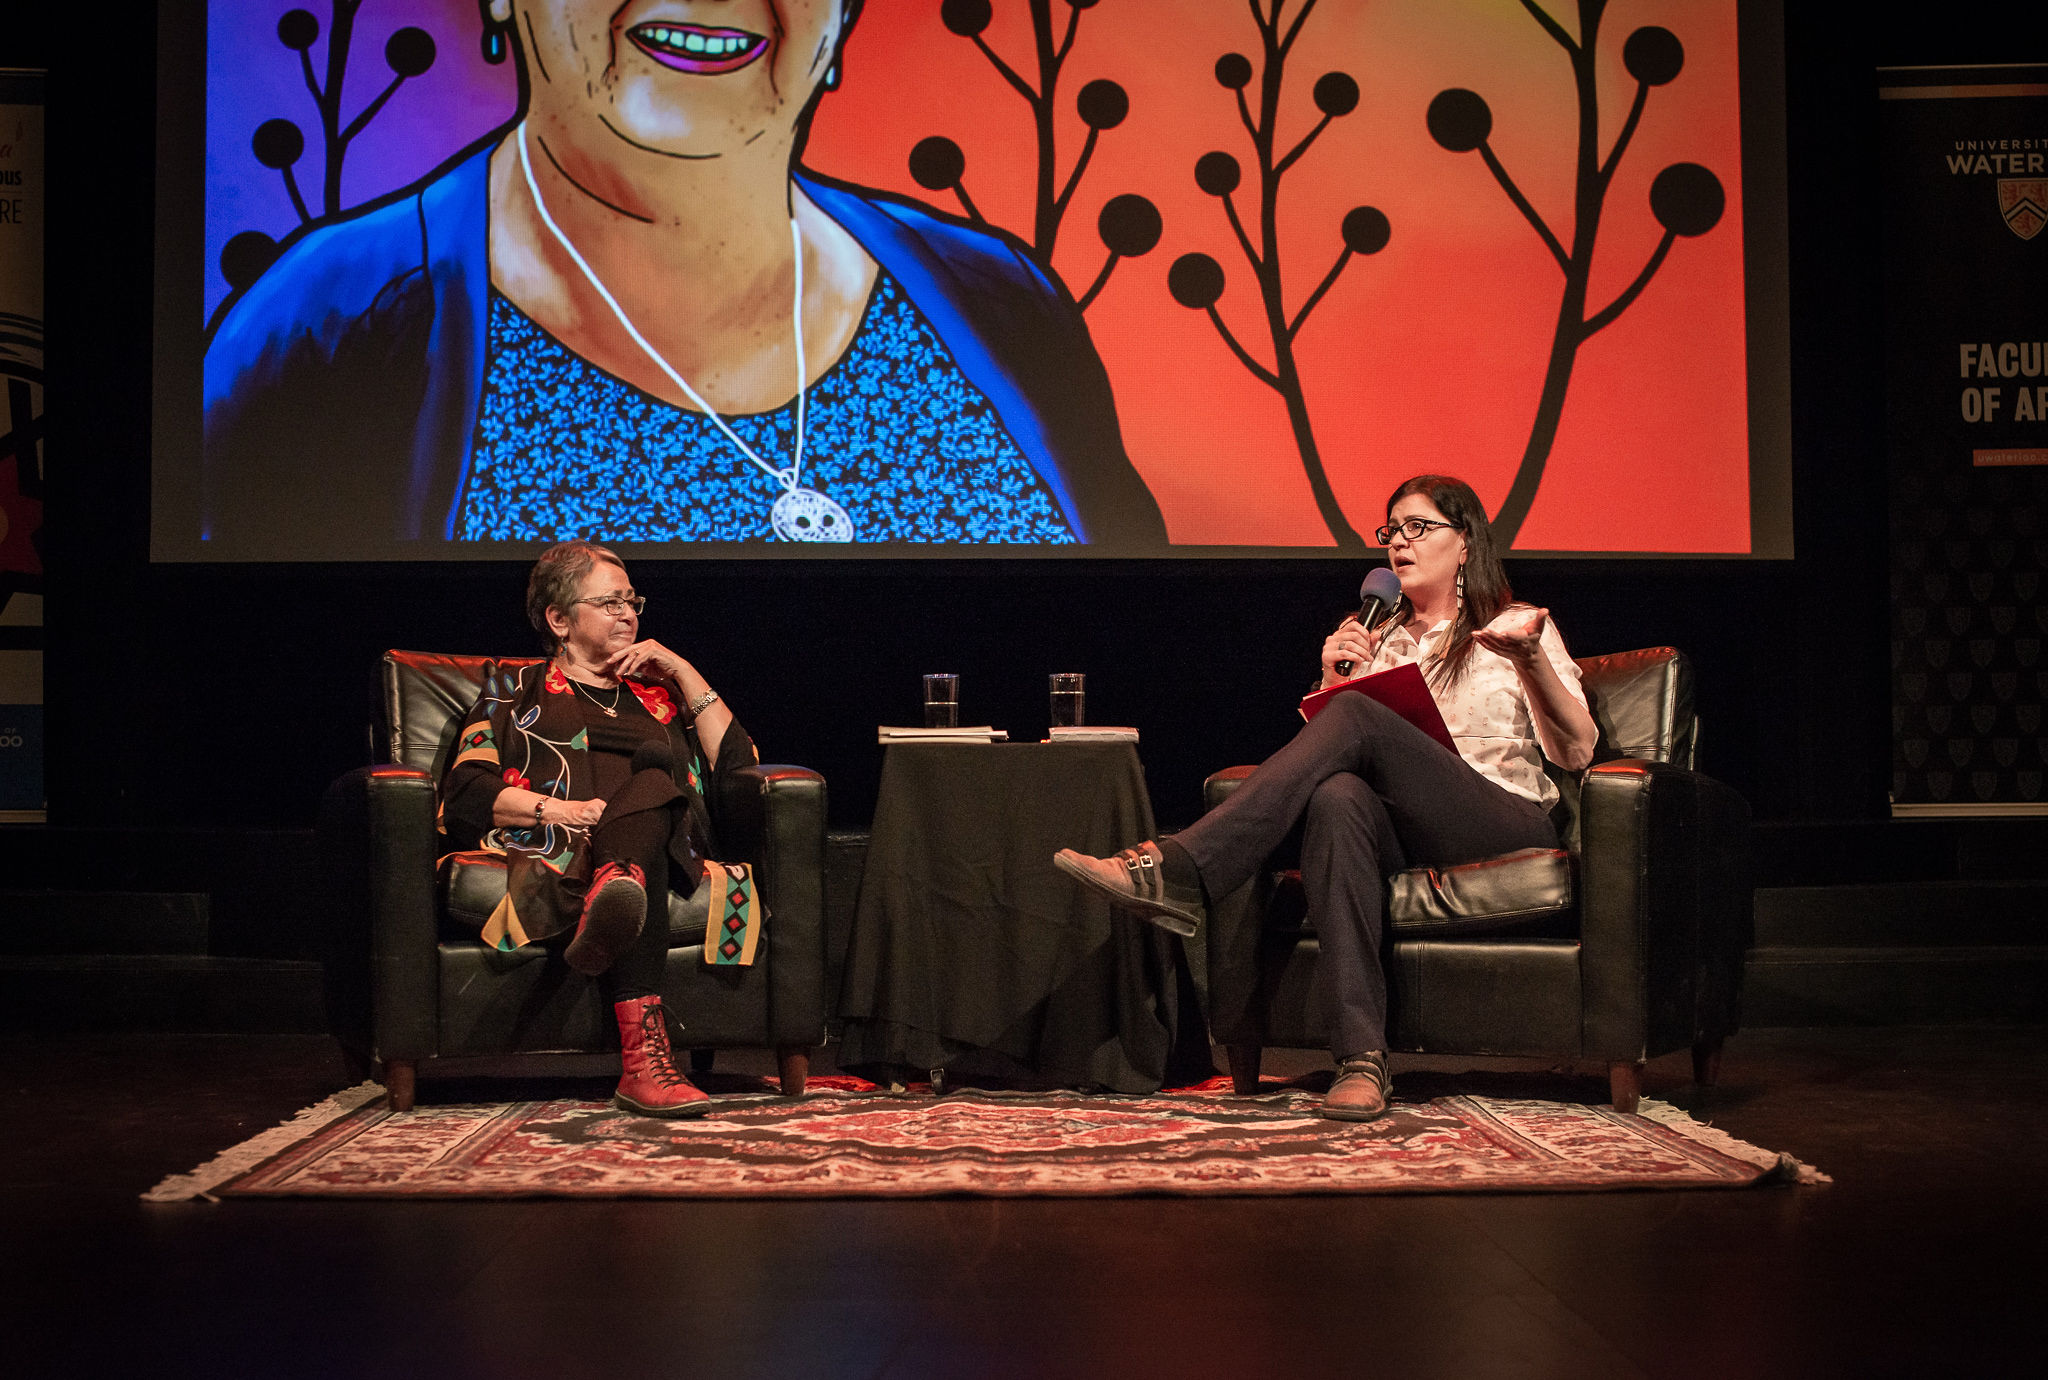 Jean Becker and Lori Campbell in conversation on stage